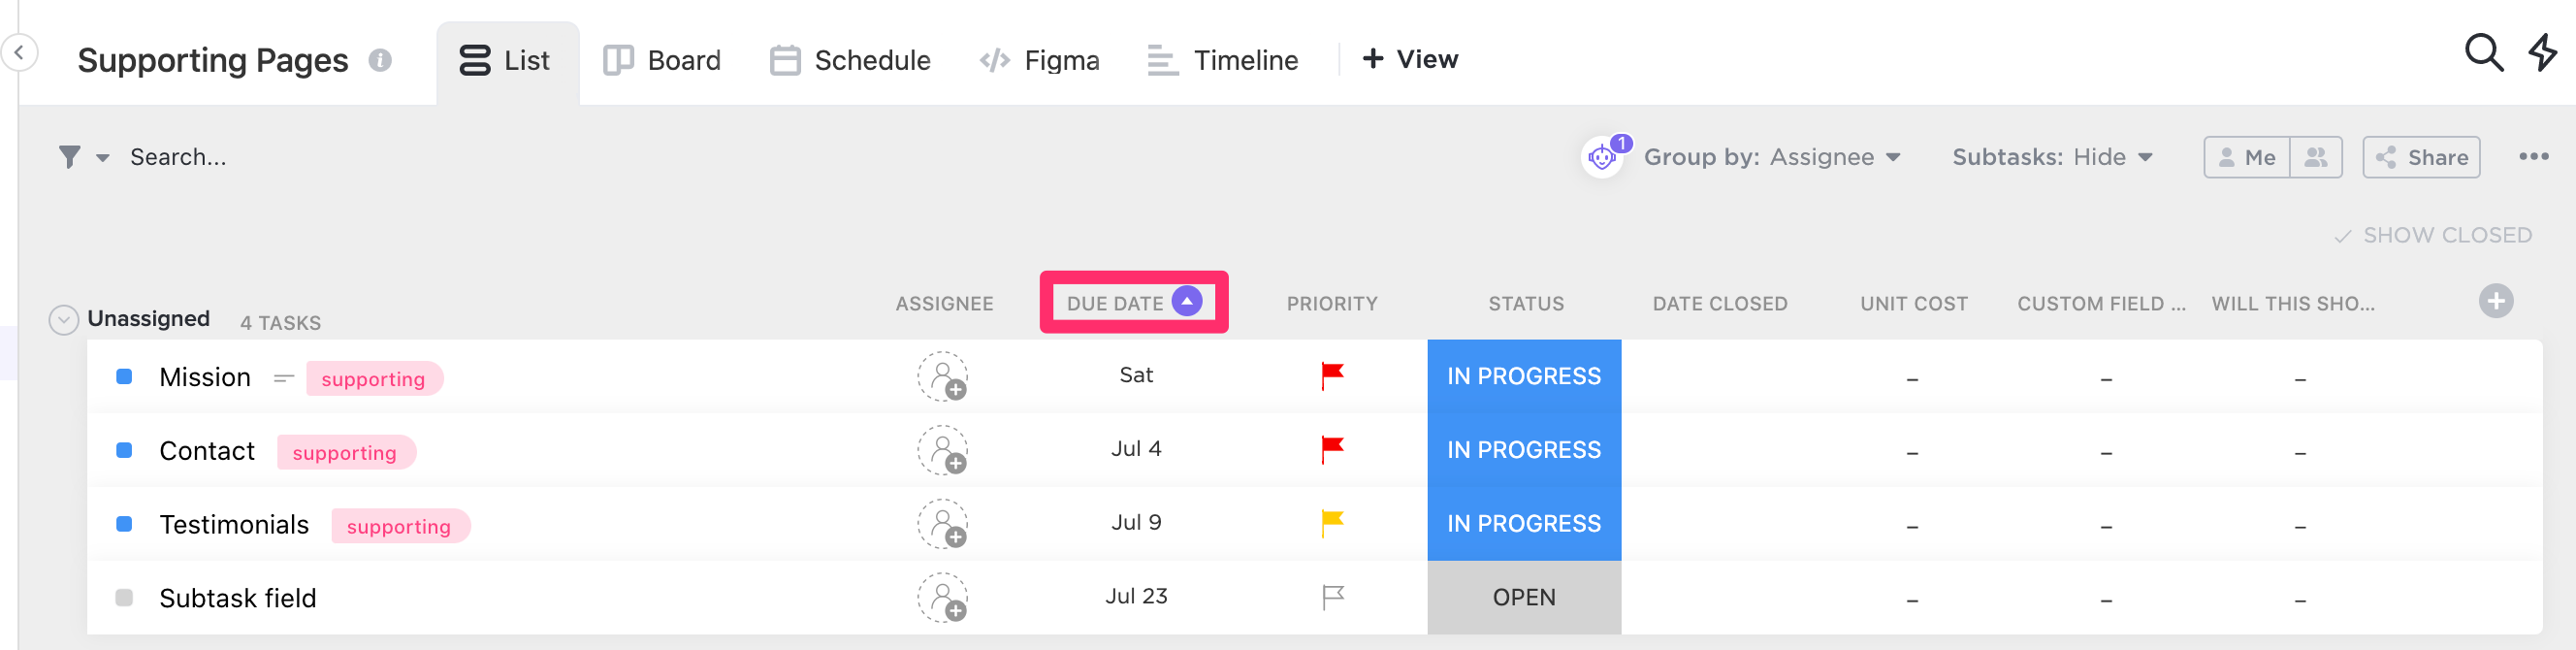 Sort a column by due date by clicking on the small arrow to the right of the due date column header